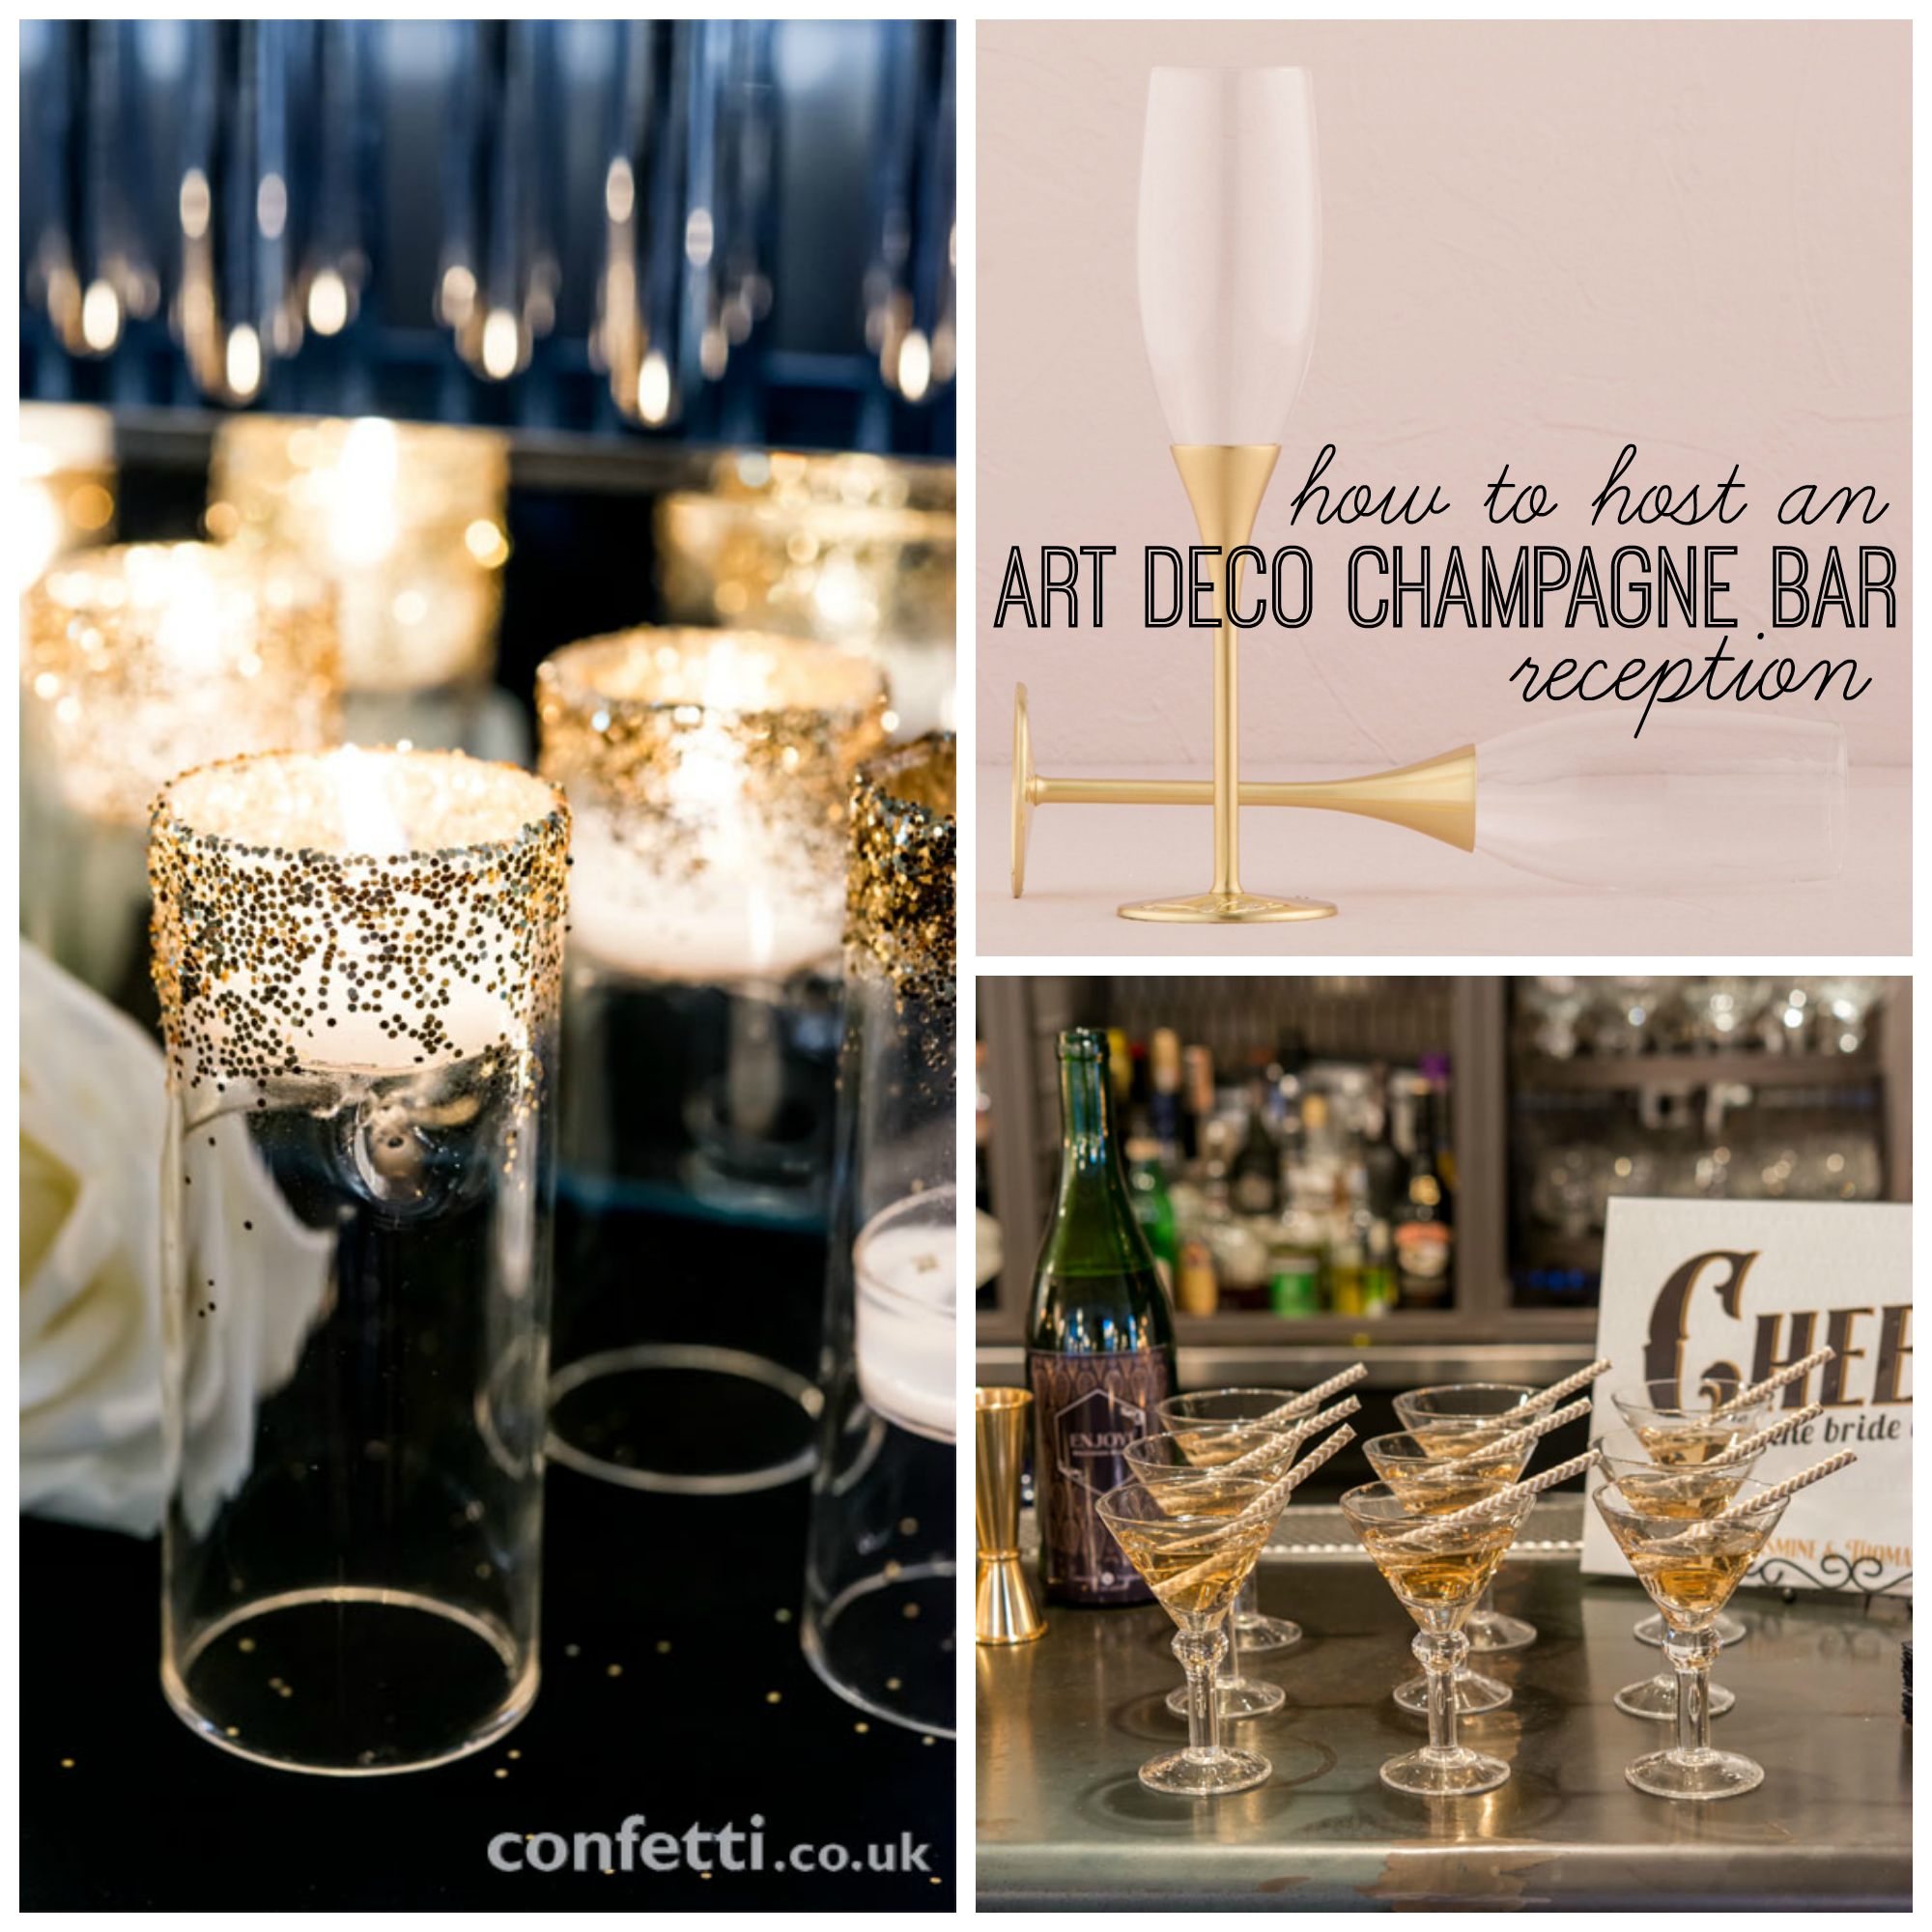 Host an Art Deco Champagne Bar Wedding Reception - Confetti.co.uk